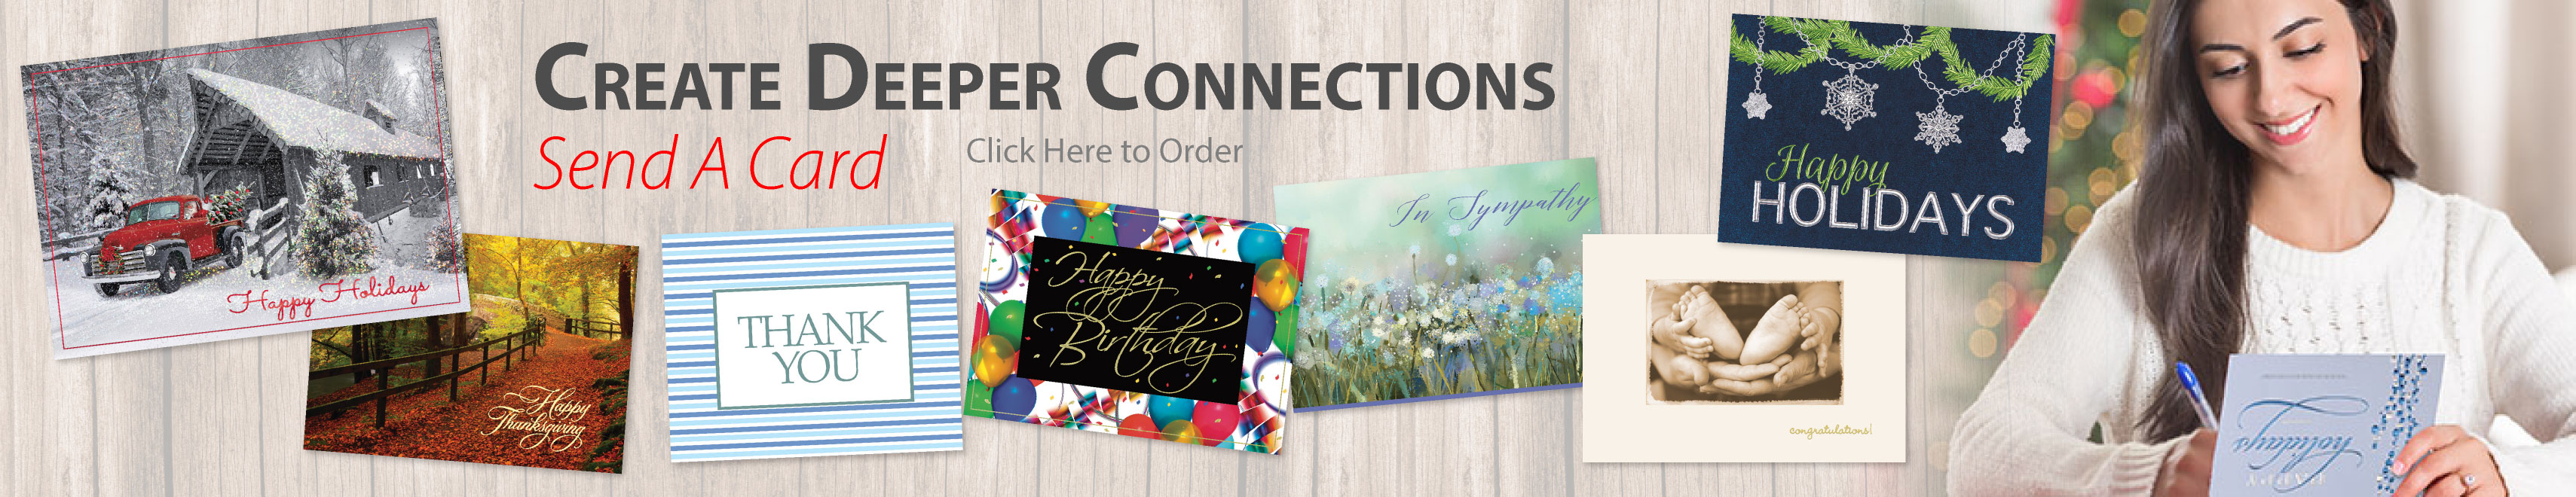 New! Holiday Cards. Order Today!